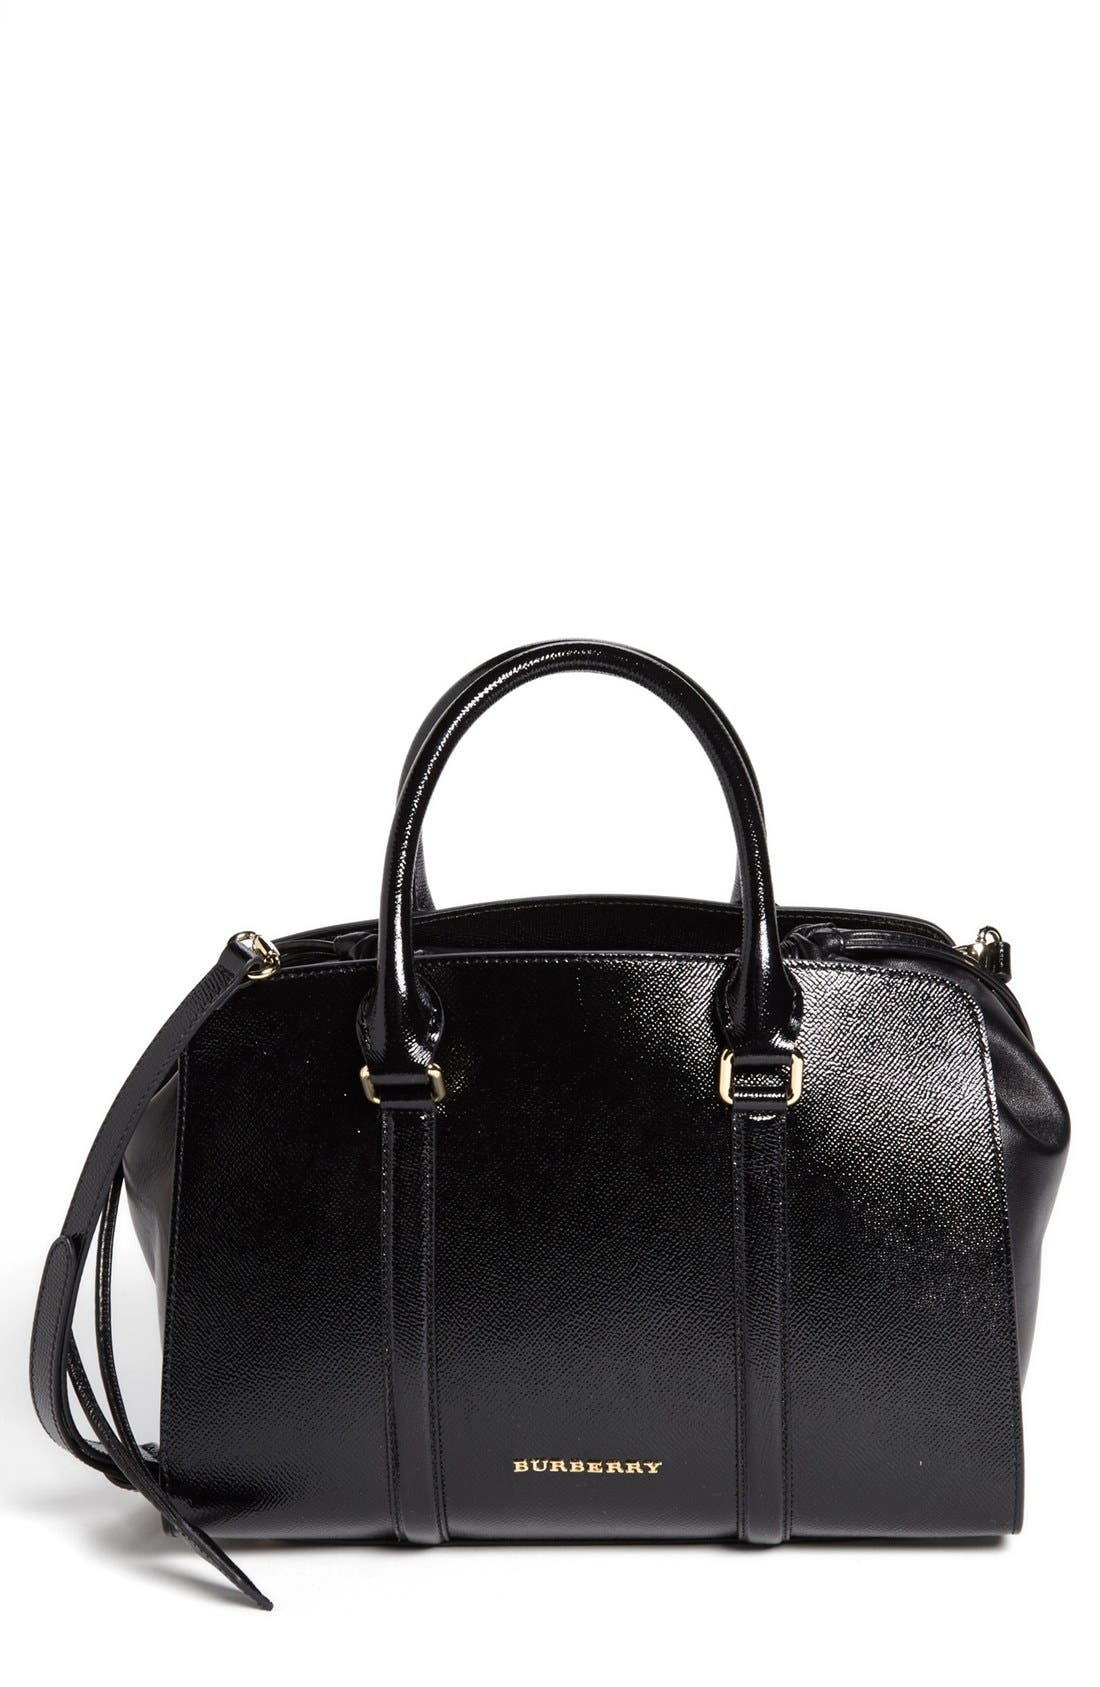 Main Image - Burberry Prorsum 'Small Dinton' Leather Satchel